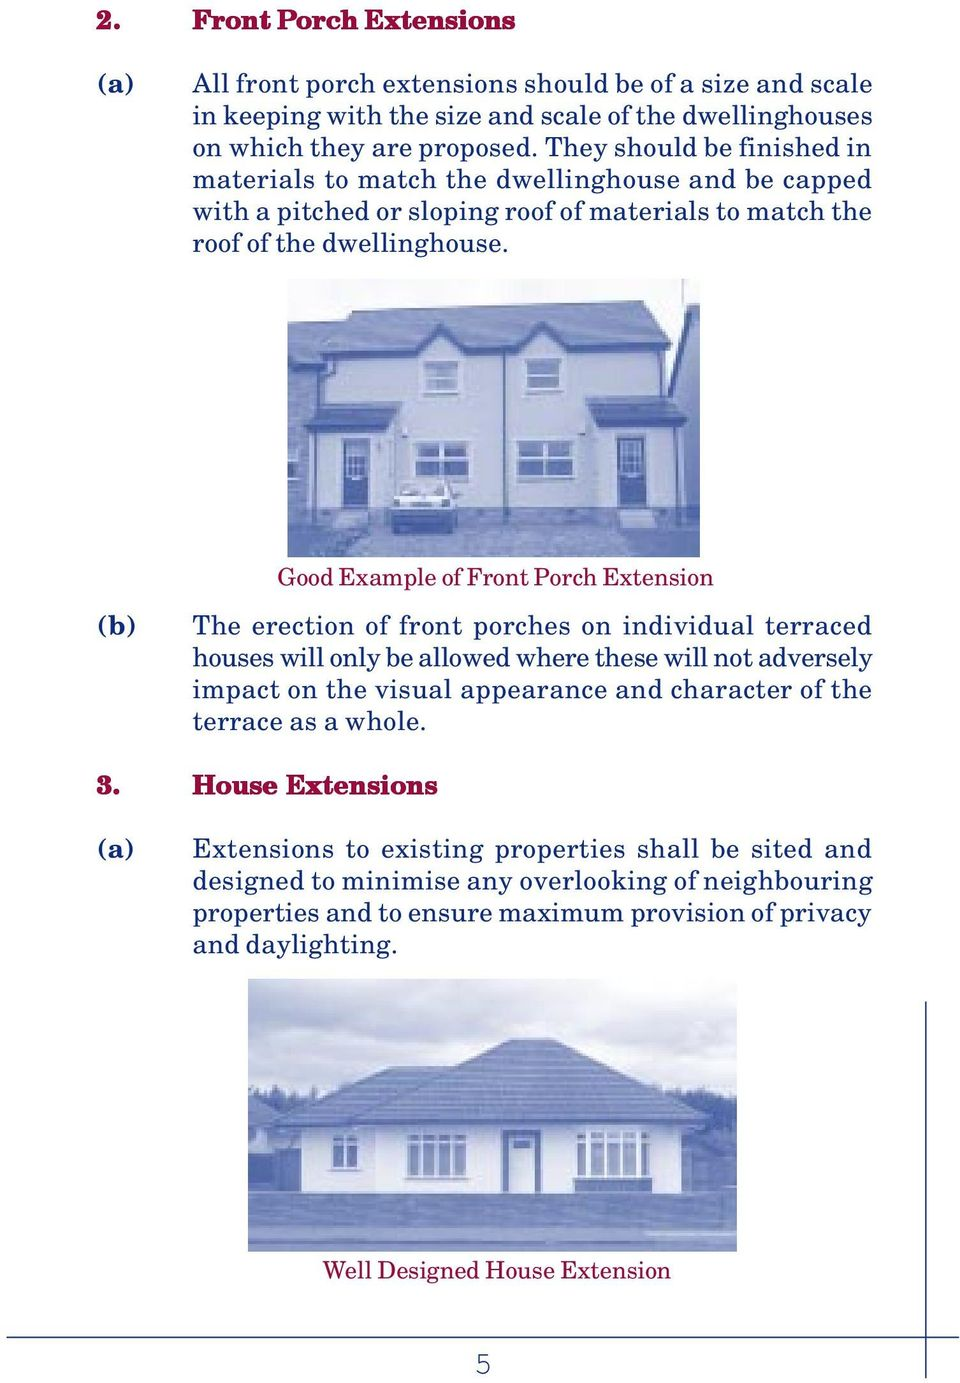 Good Example of Front Porch Extension (b) The erection of front porches on individual terraced houses will only be allowed where these will not adversely impact on the visual appearance and